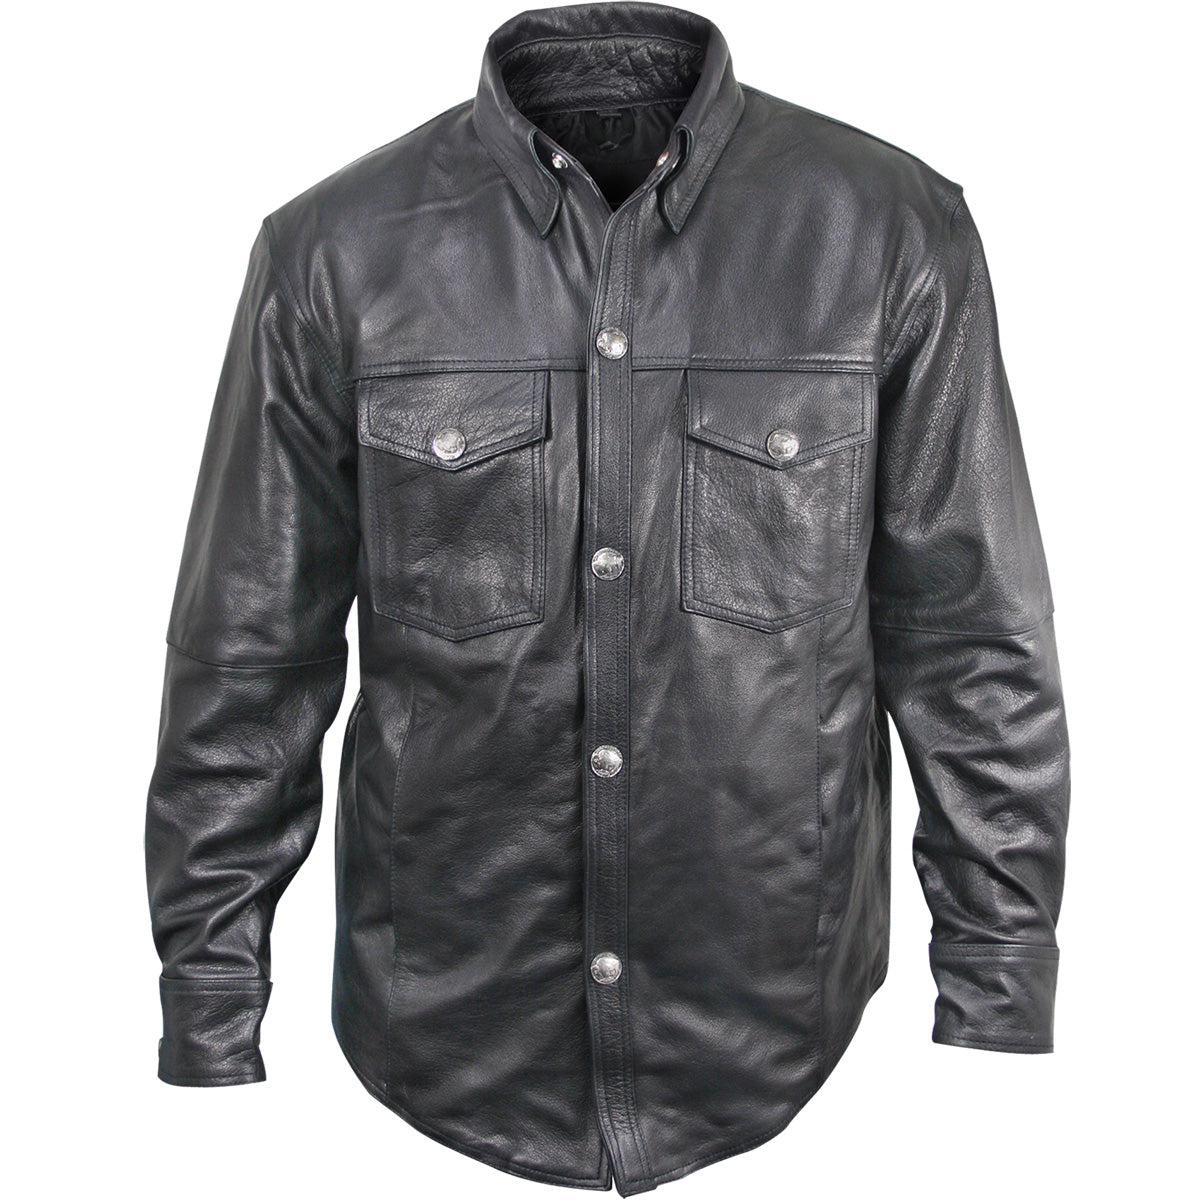 Xelement XS908B 'Nickel' Men's Black Leather Shirt with Buffalo